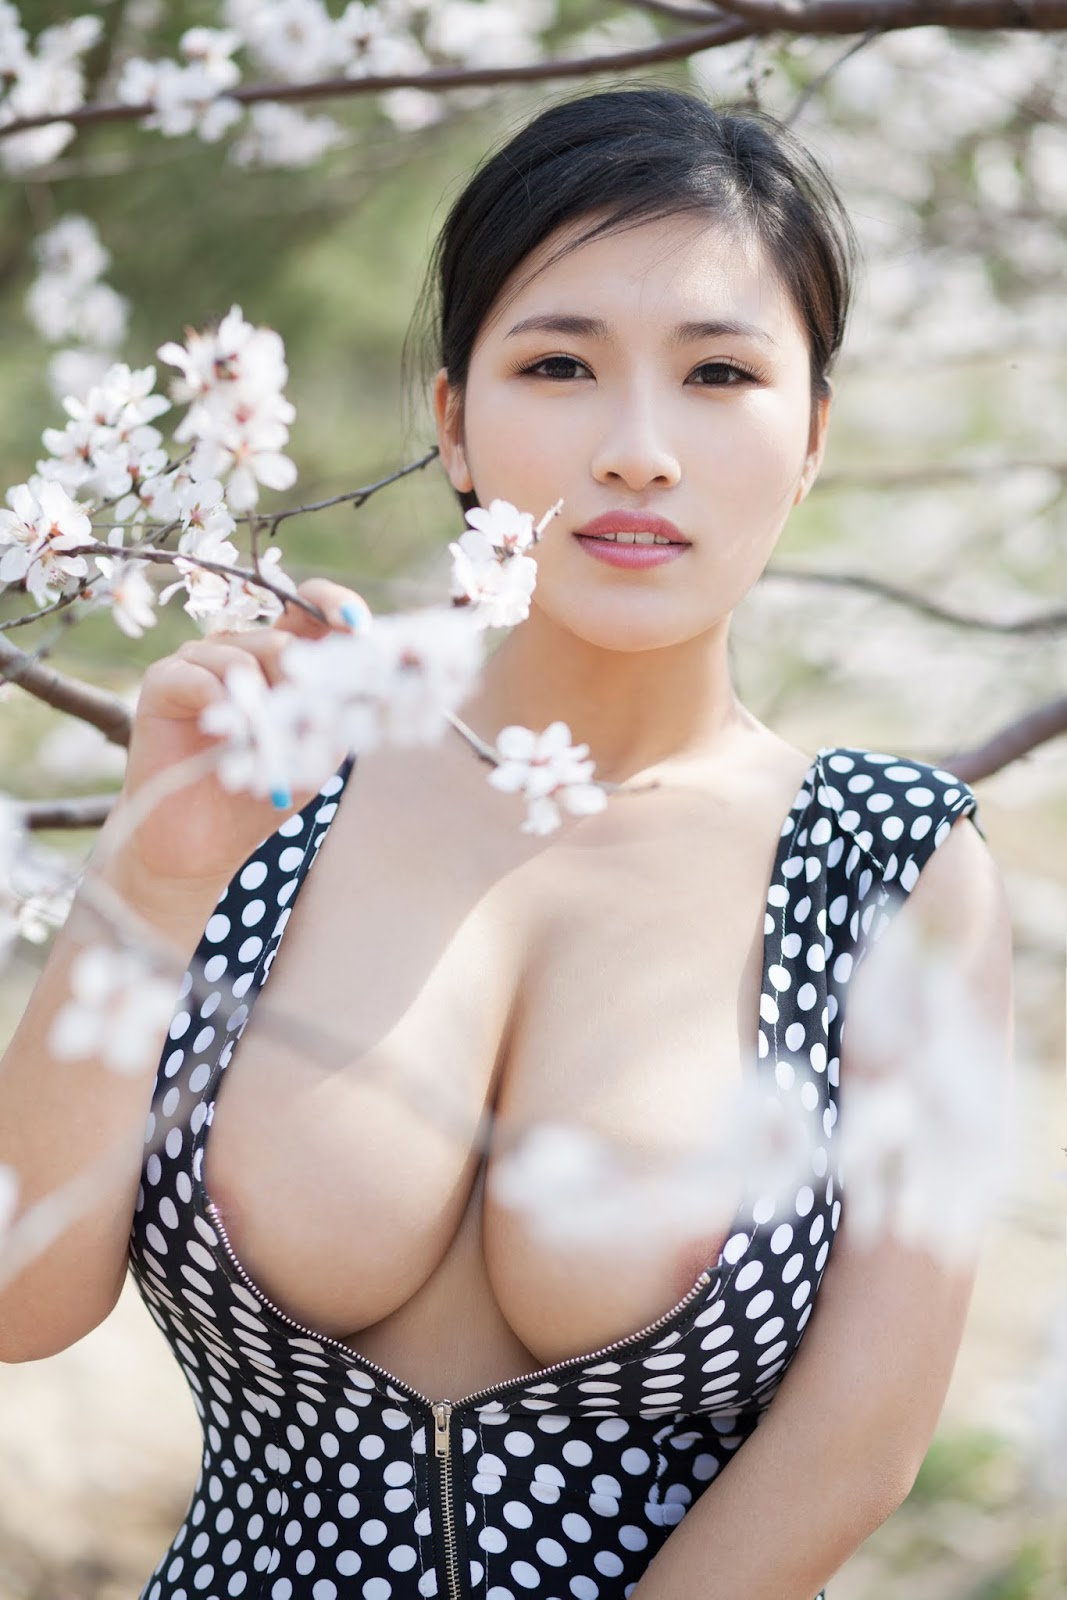 %25C2%25BC %252B 31 - Hot Photo TUIGIRL NO.57 Nude